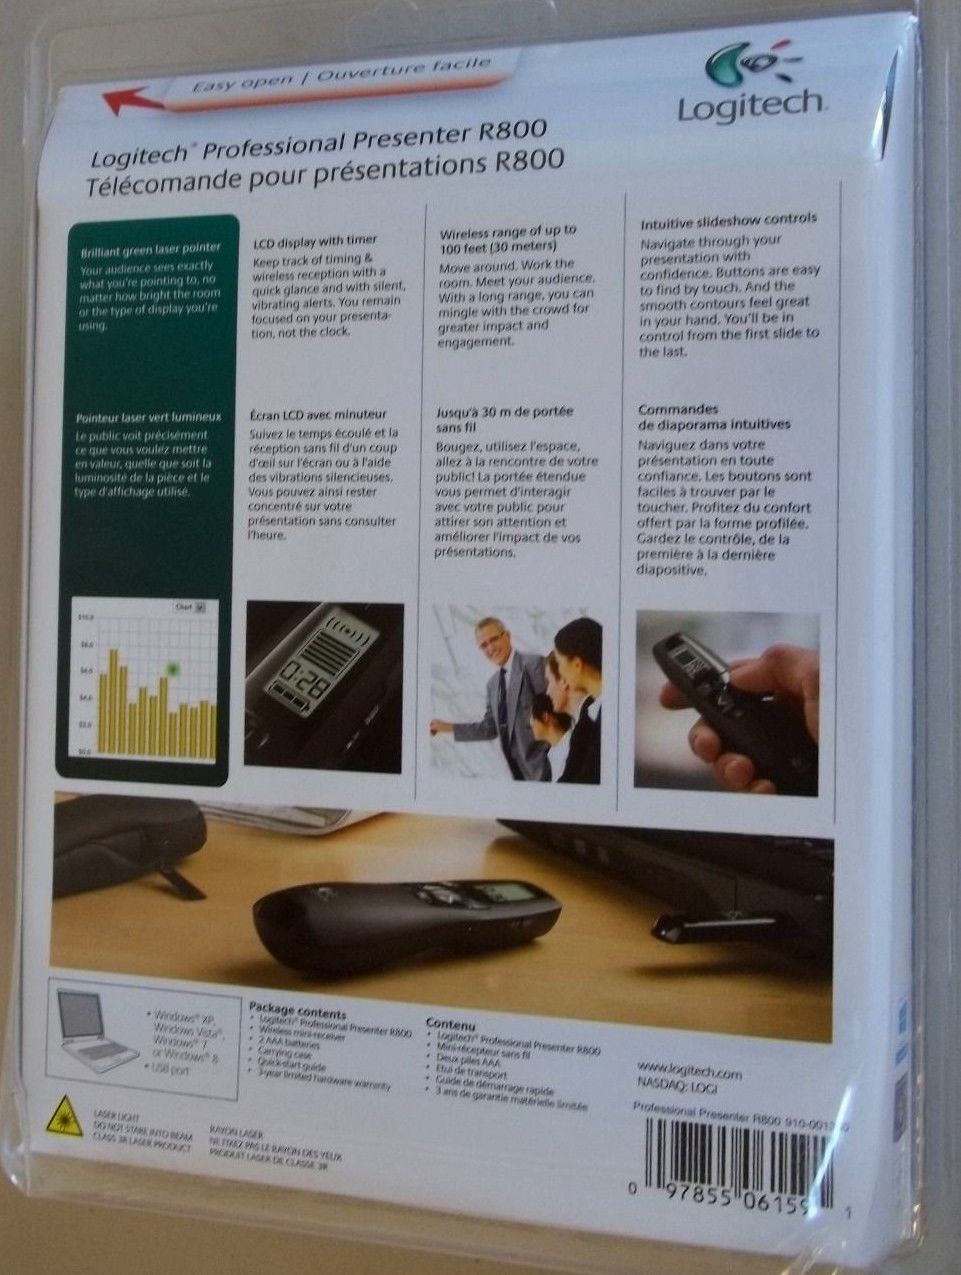 Logitech professional presenter r700 helps you give exceptionally good - Logitech R800 Professional Wireless Presenter W Green Laser Pointer Projection 6 29 99 6 Of 8